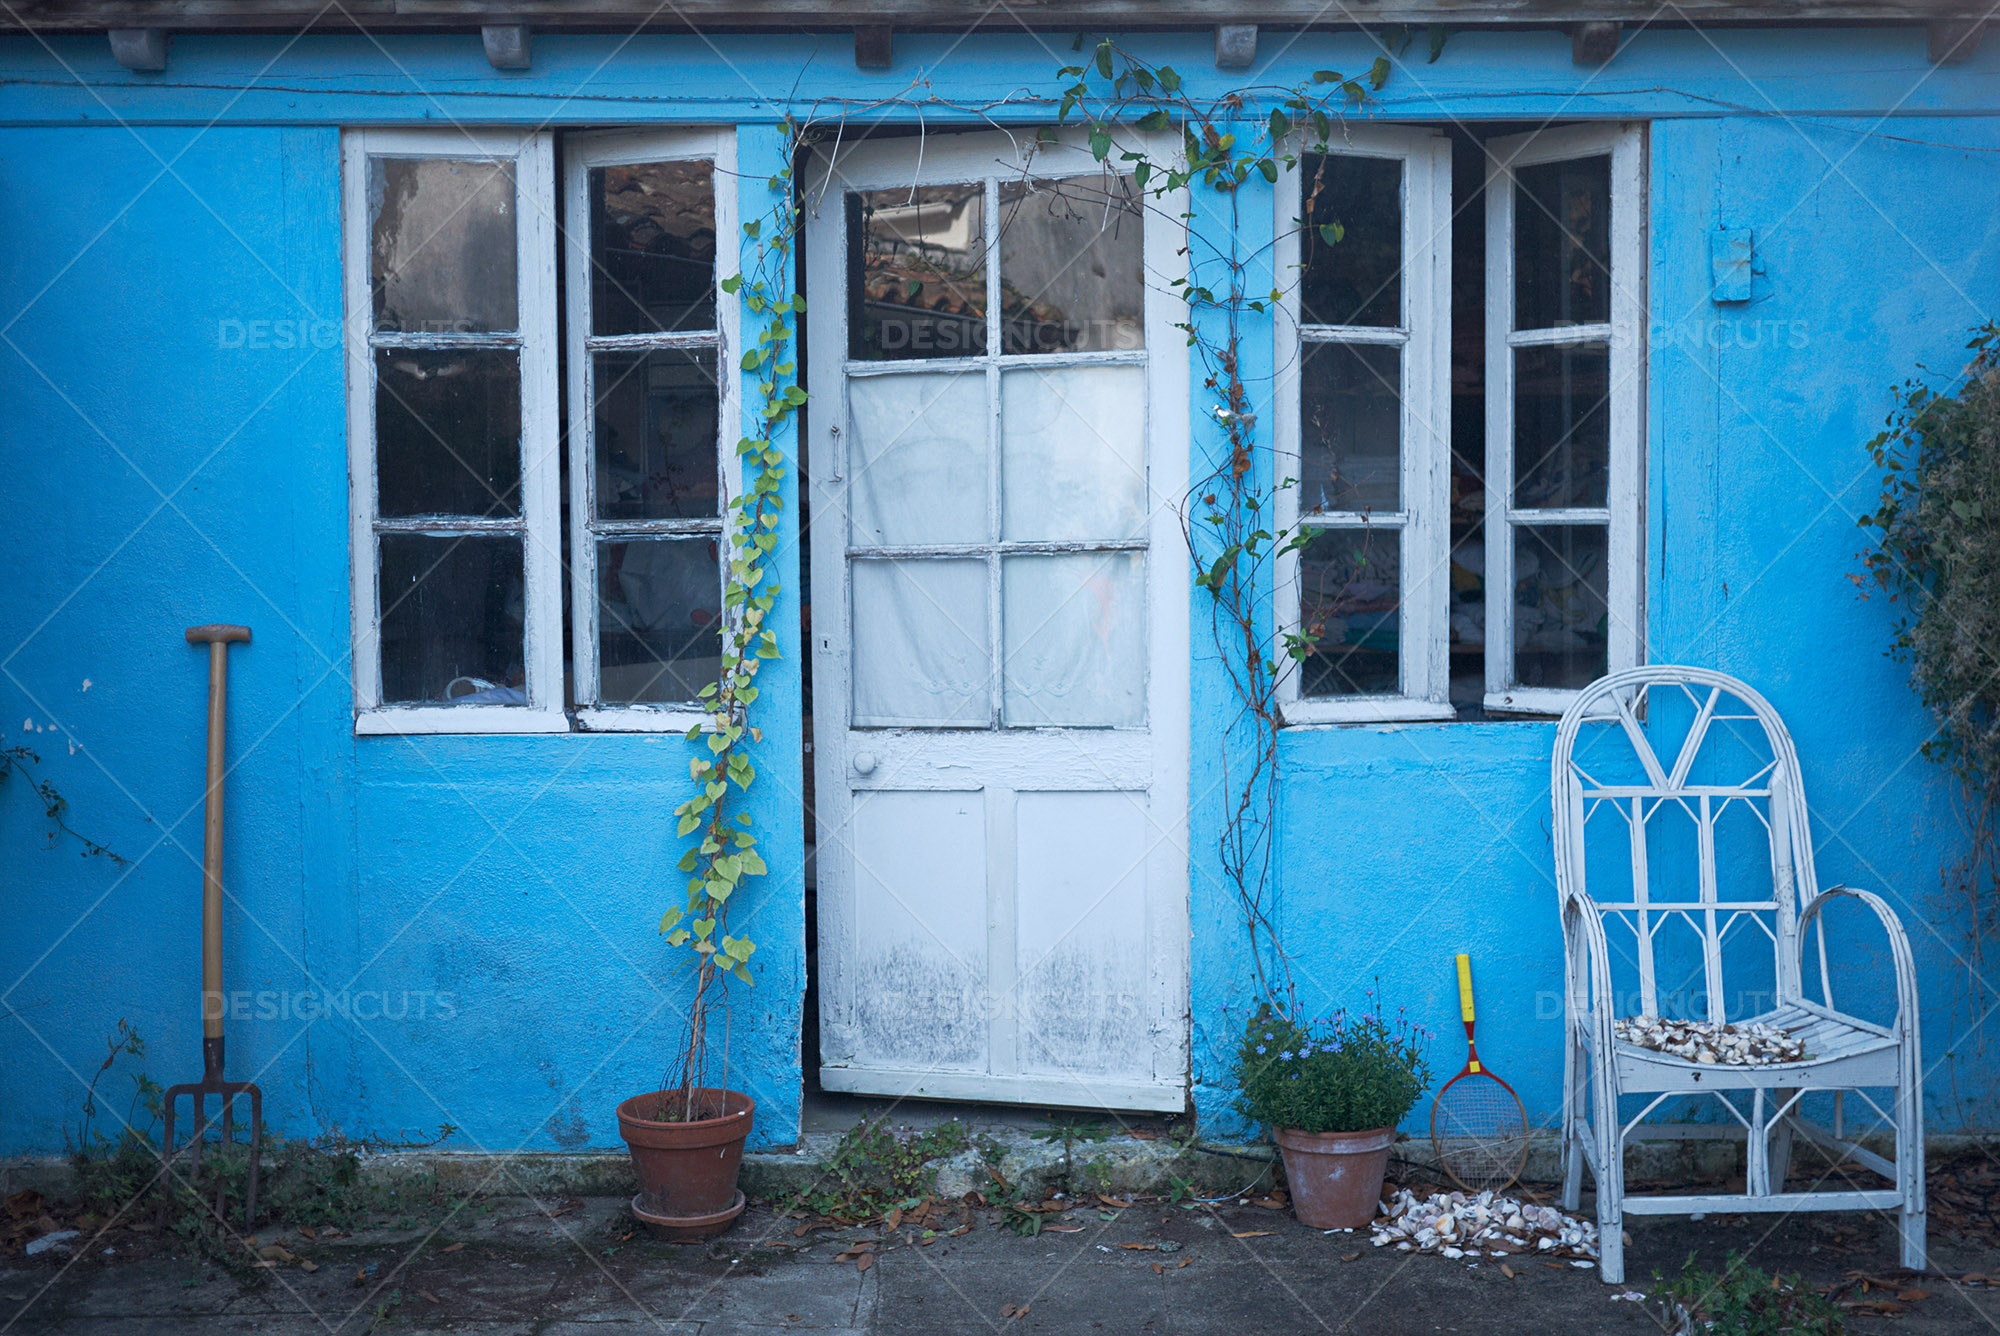 Rustic Blue House With White Door